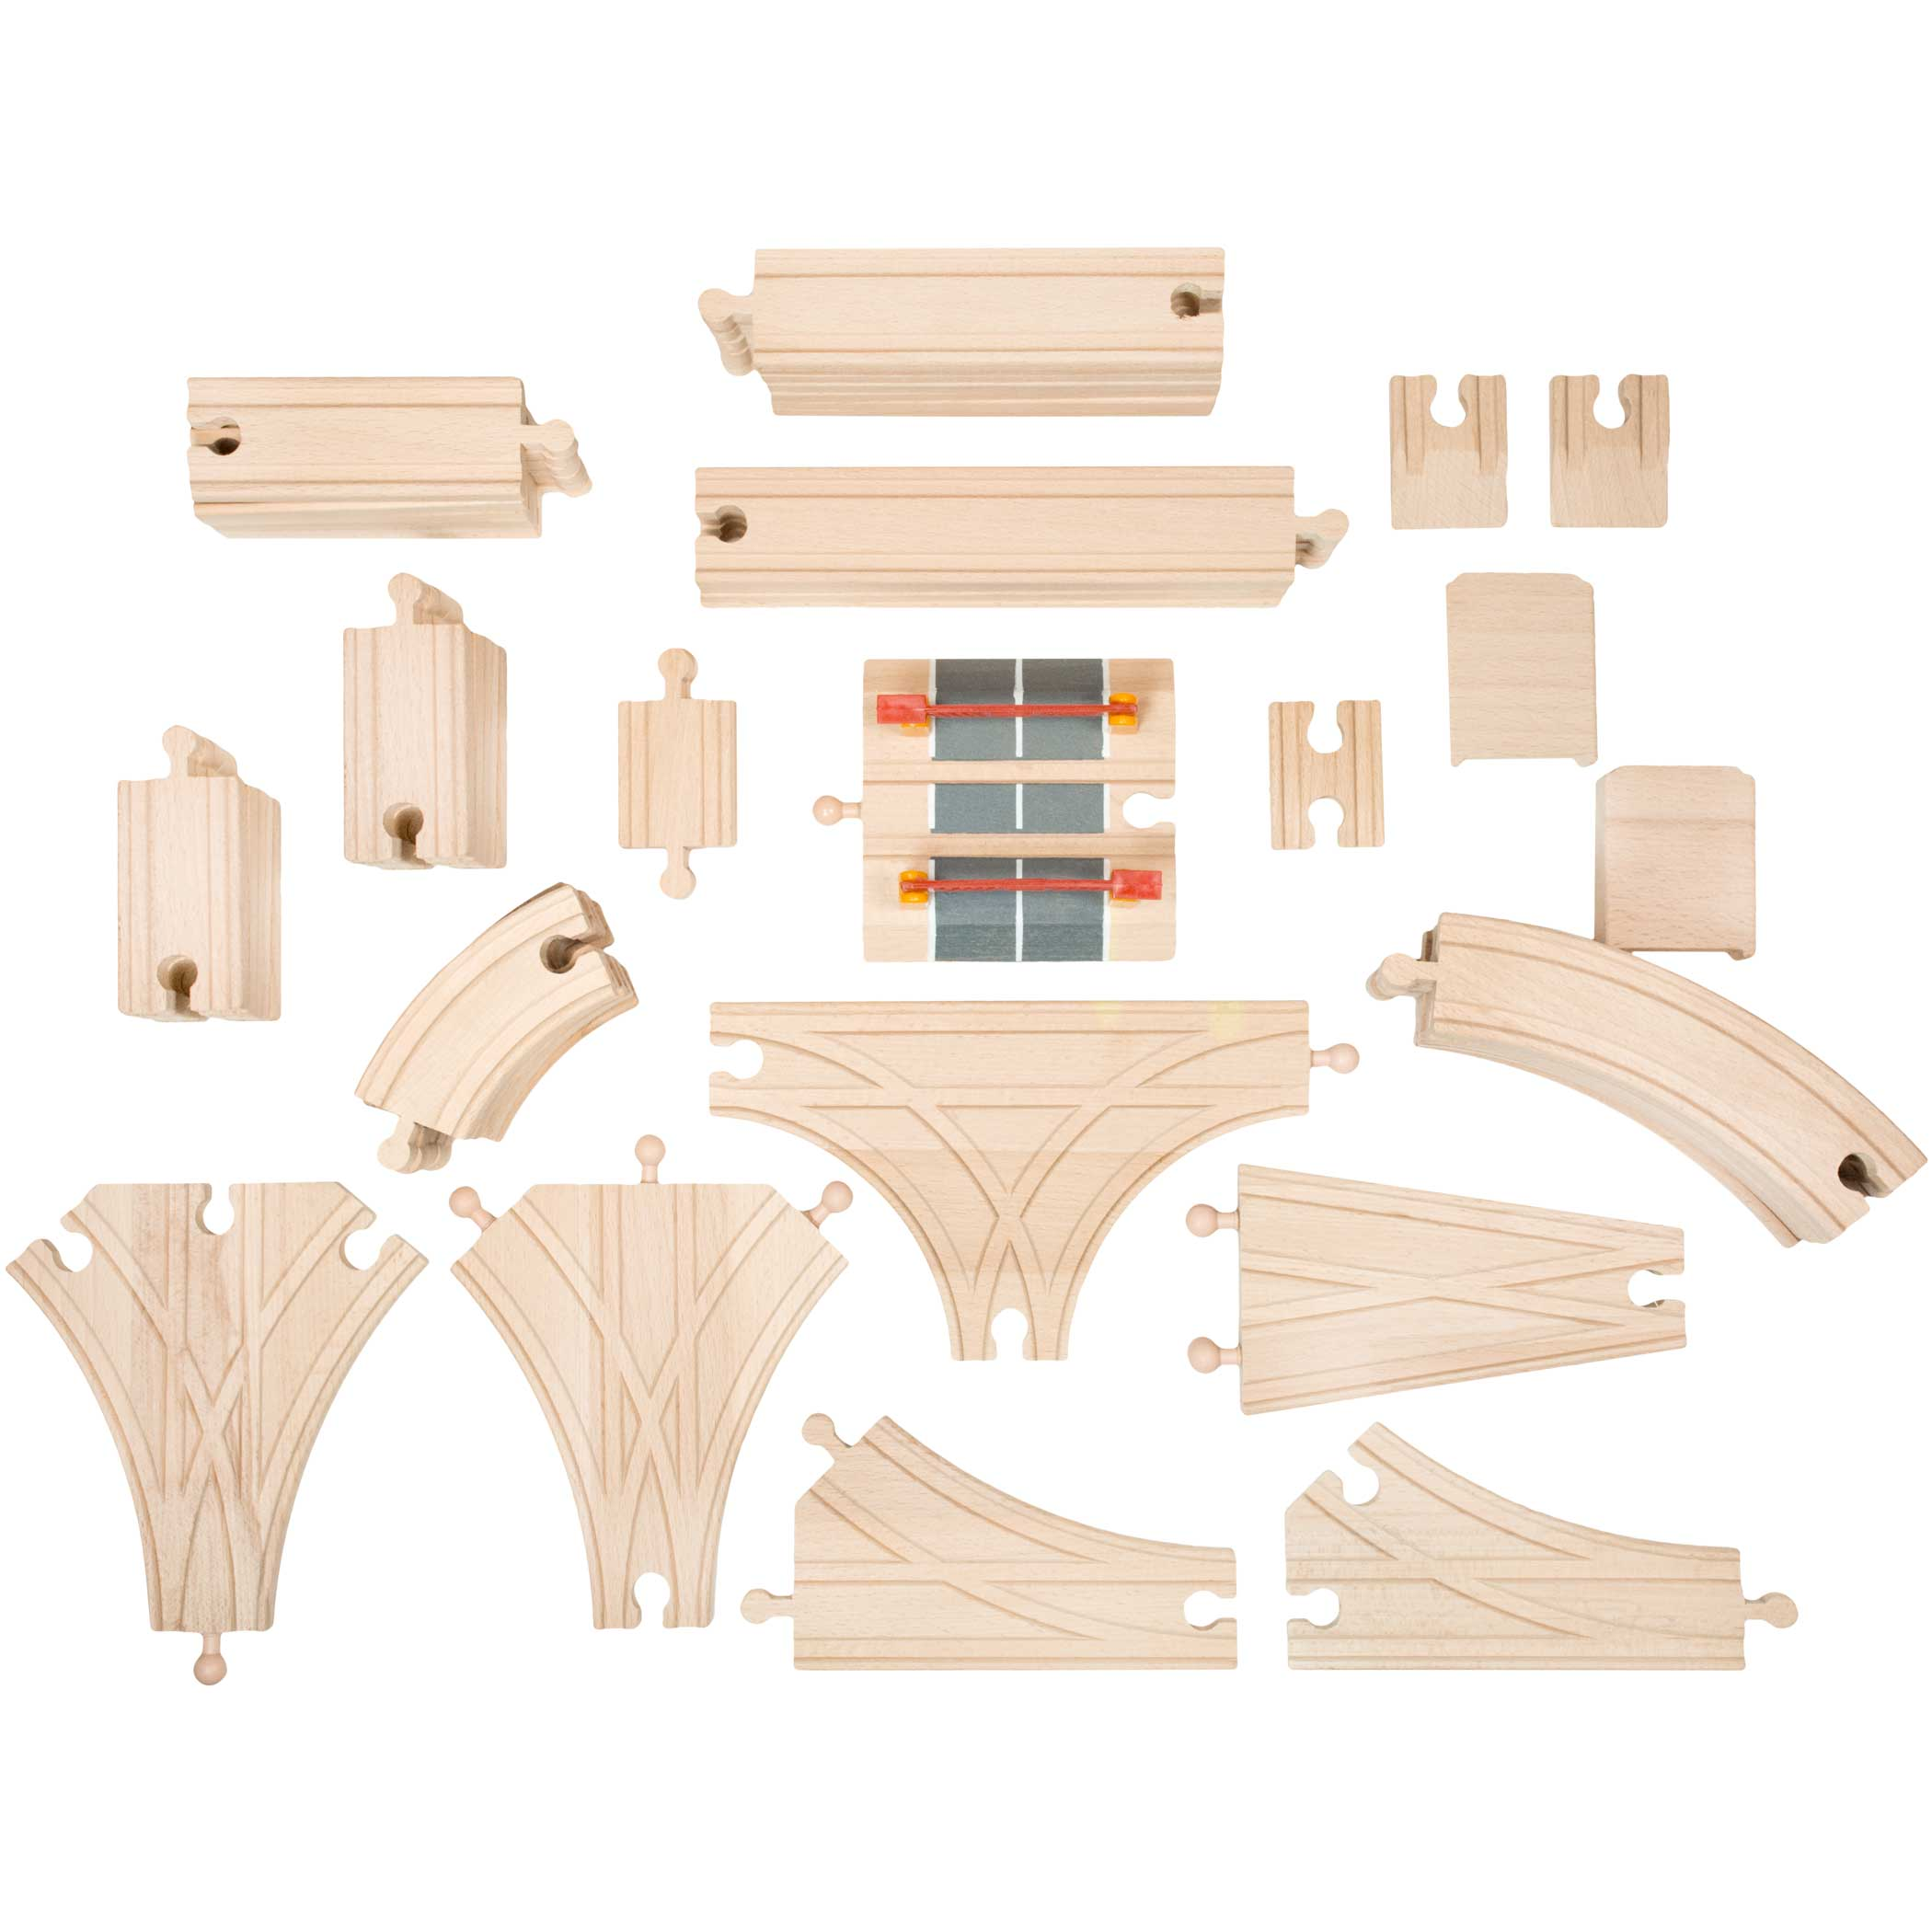 playbees wooden train track toy set 59 pieces compatible w other train sets ebay. Black Bedroom Furniture Sets. Home Design Ideas